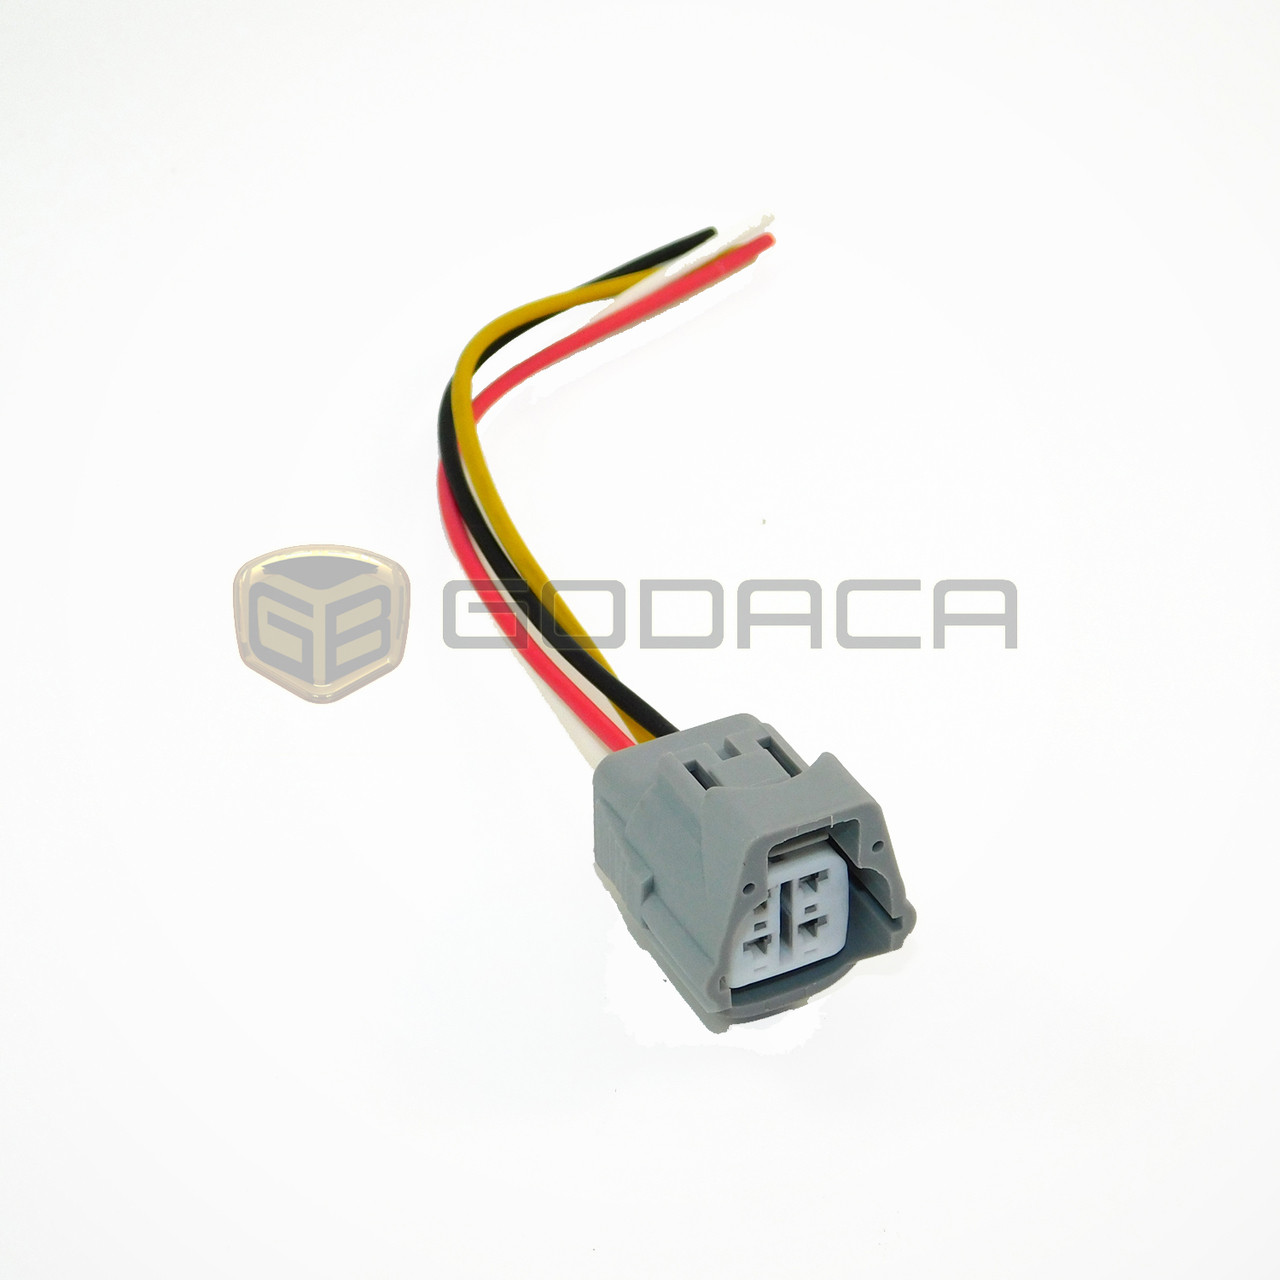 1 x connector 4-way toyota 2jz a/c 4p connector pigtail wiring harness  sensor - godaca, llc